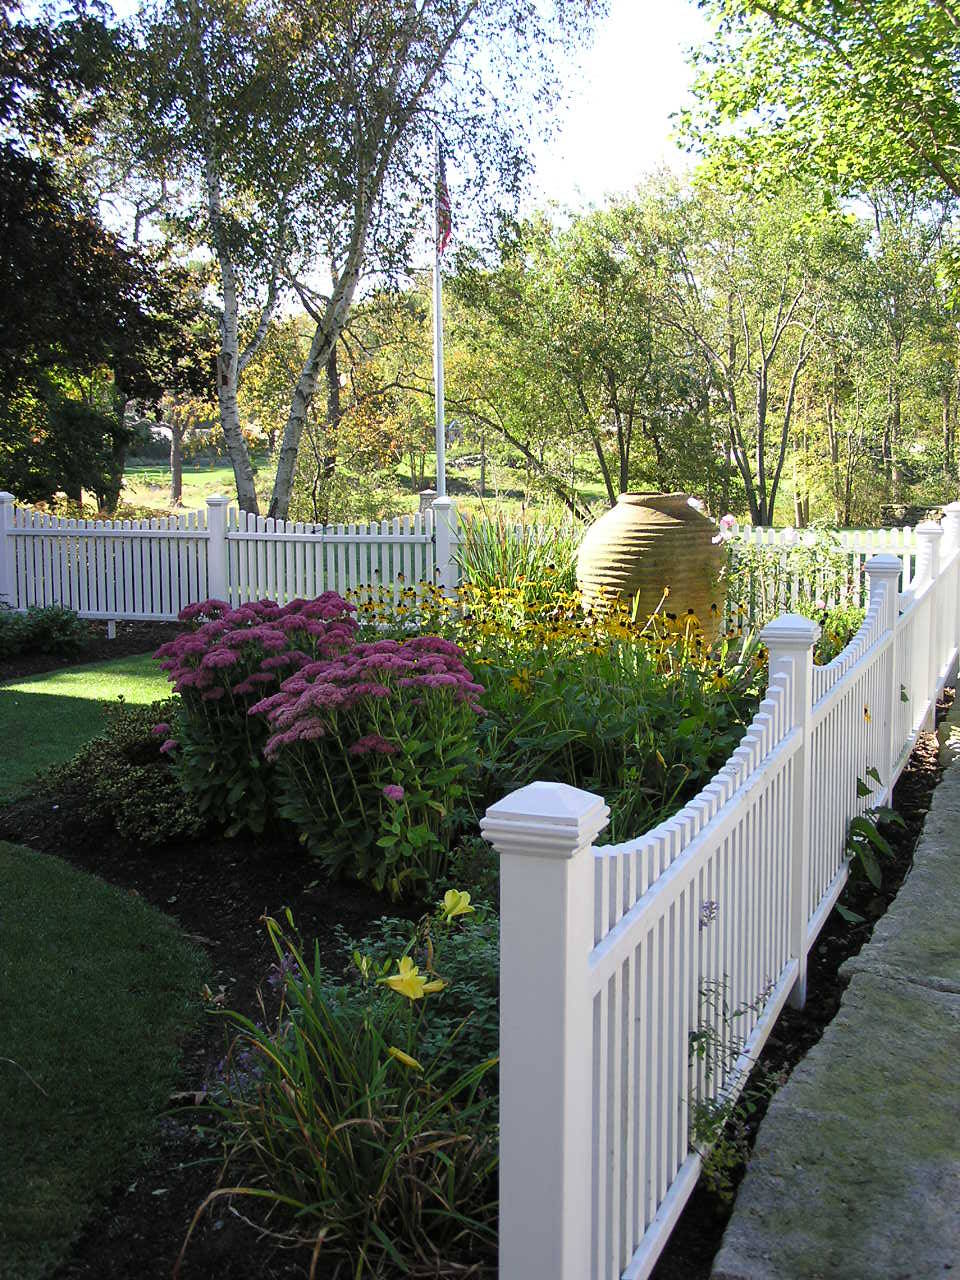 White picket fence house Traditional Landscape arbor climbing plants cottage entrance entry grass lawn